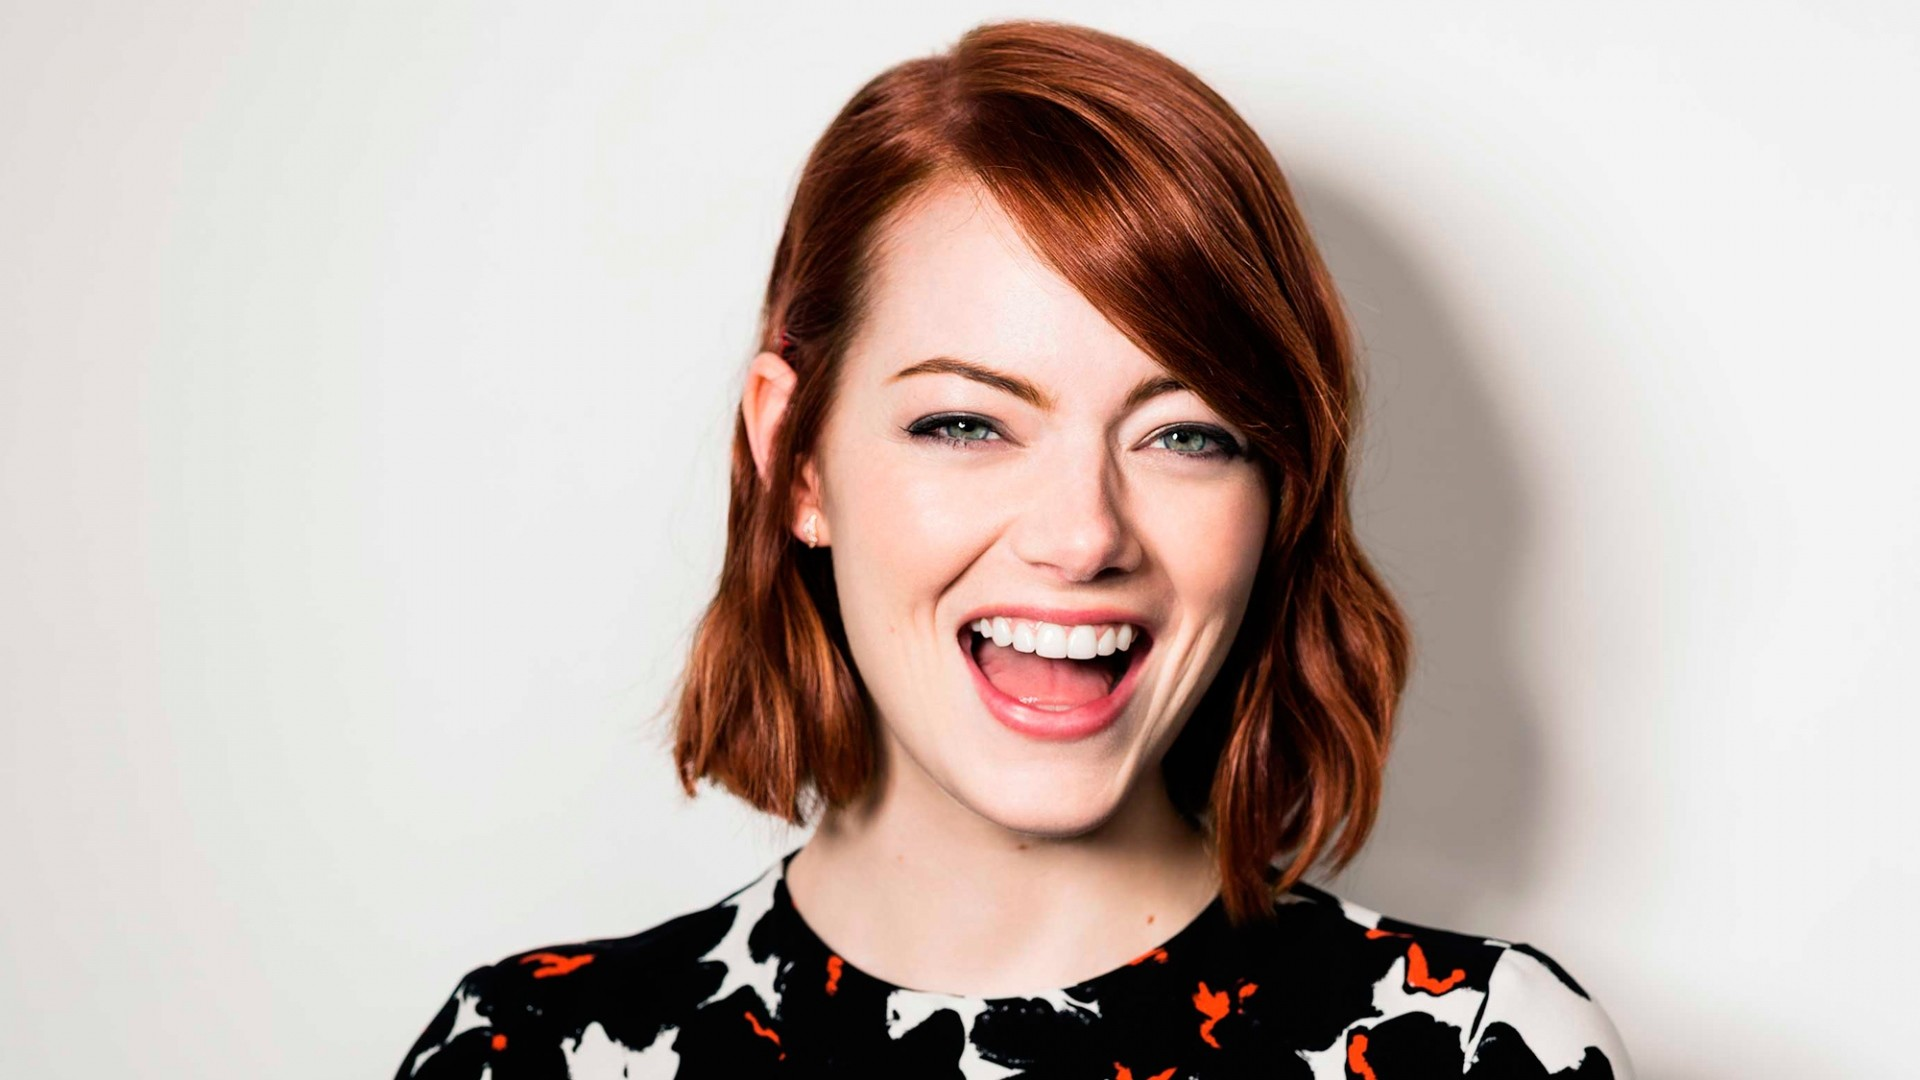 emma stone blonde hair photo